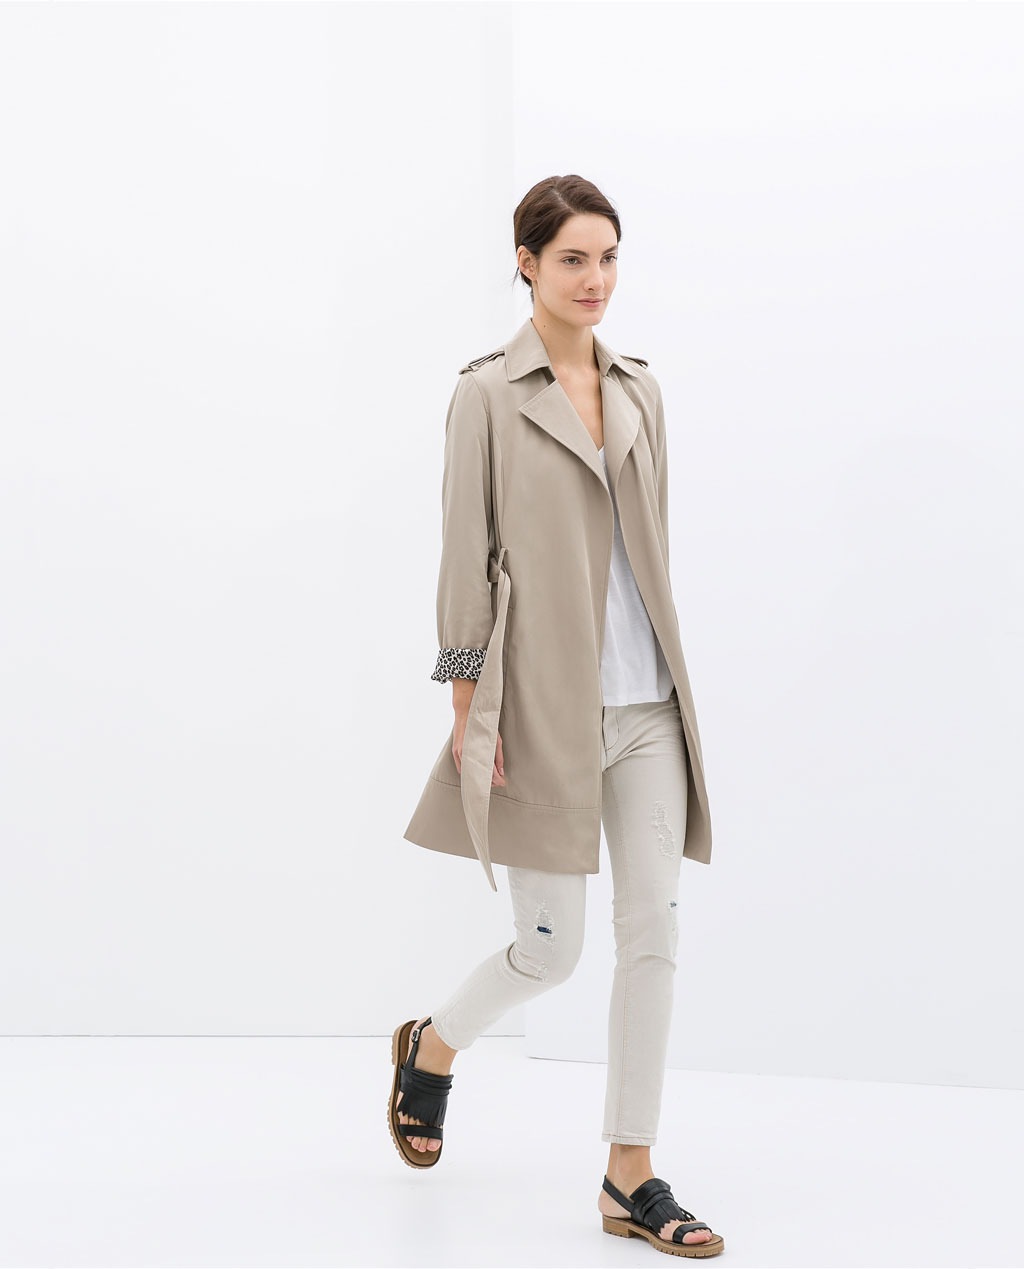 Flowing Trench Coat - pattern: plain; shoulder detail: obvious epaulette; style: trench coat; collar: standard lapel/rever collar; length: mid thigh; predominant colour: stone; occasions: casual, work, creative work; fit: tailored/fitted; fibres: polyester/polyamide - 100%; waist detail: belted waist/tie at waist/drawstring; sleeve length: long sleeve; sleeve style: standard; collar break: medium; pattern type: fabric; texture group: woven light midweight; season: s/s 2014